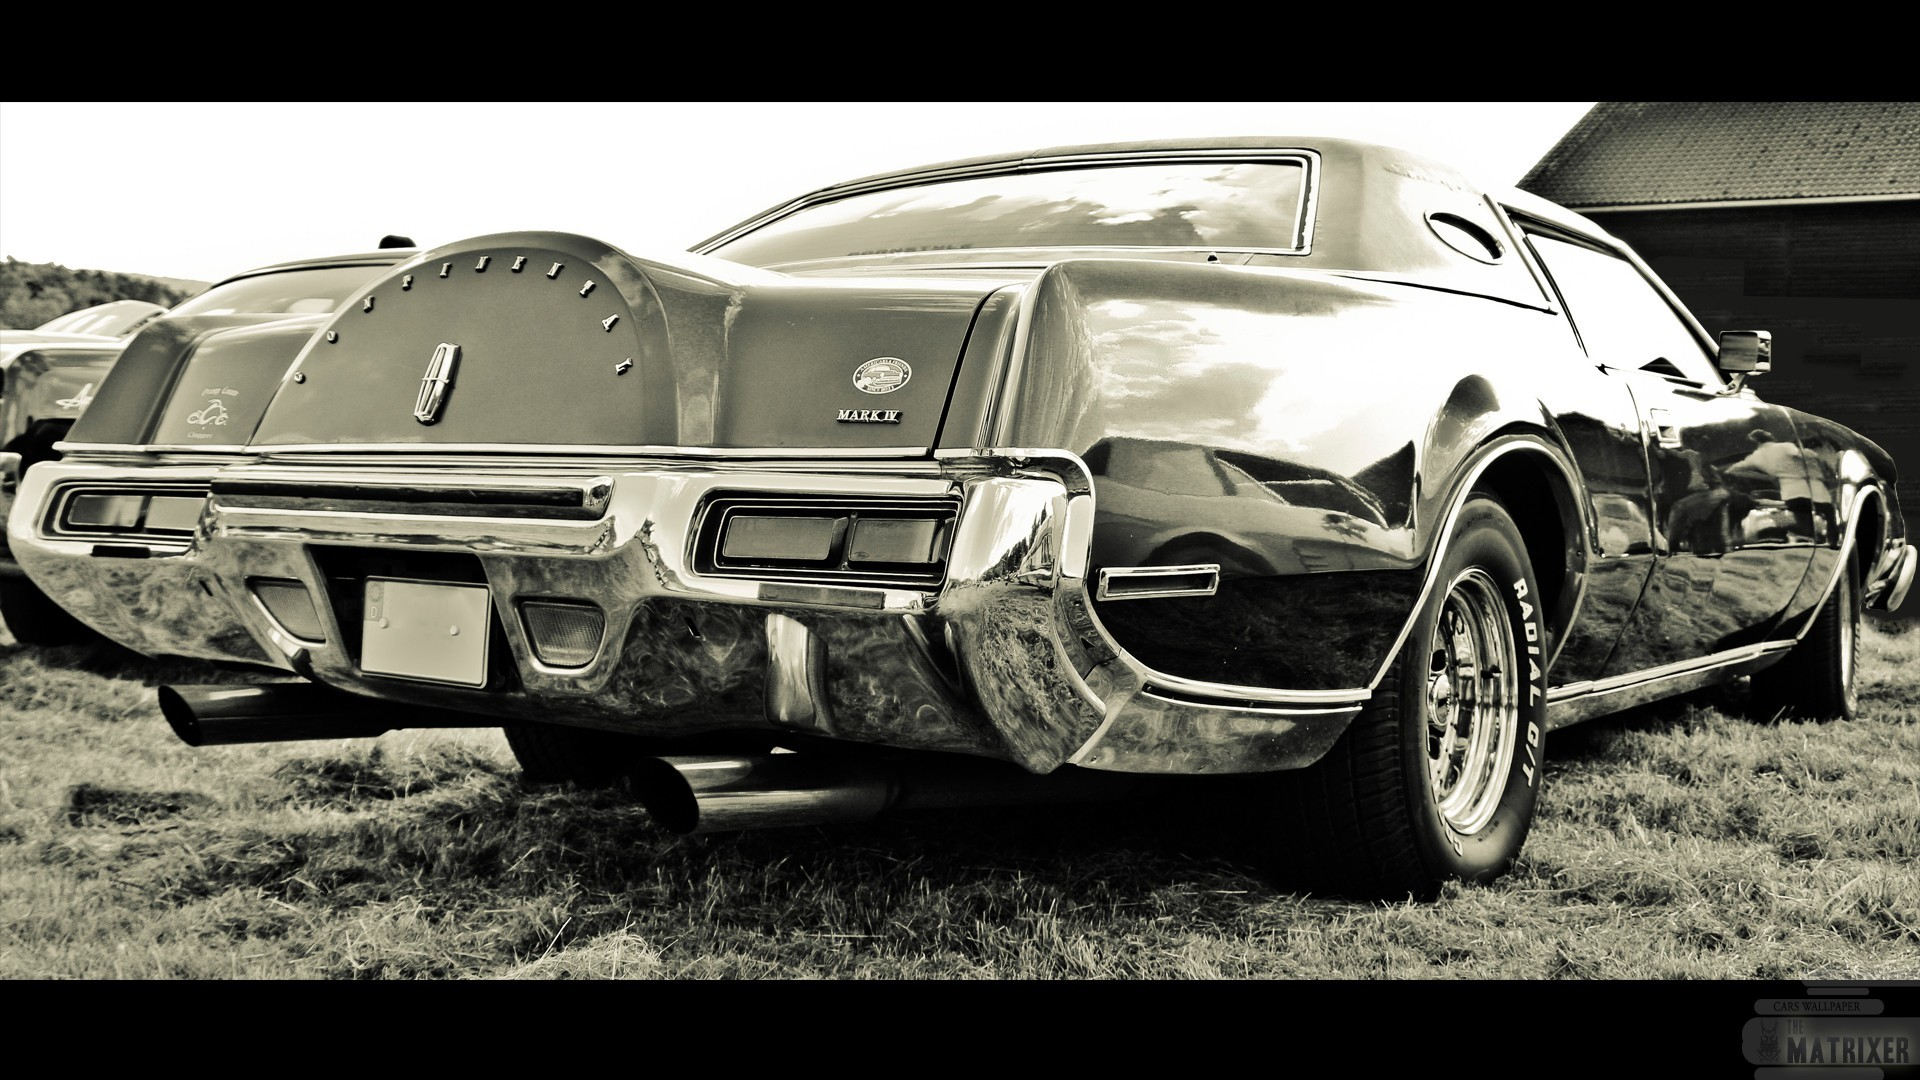 Res: 1920x1080, Wallpaper, Oldtimer, Muscle Car, Ford, Dodge, Hintergrundbilder,chevrolet